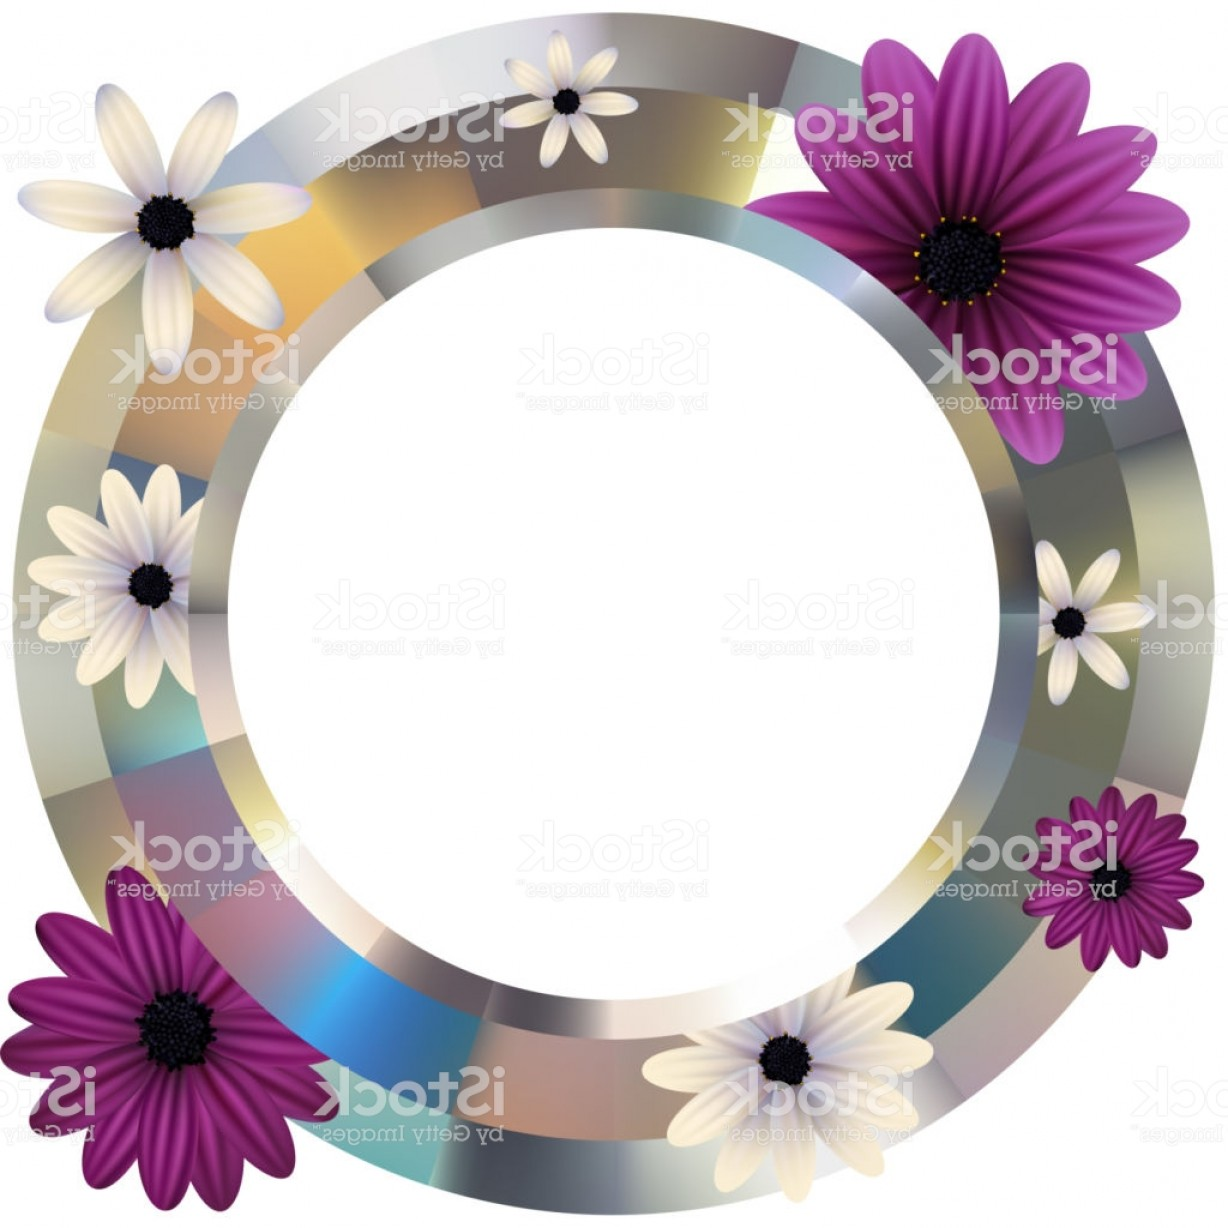 Purple Gerber Daisy Vector Framw: Flowers Gerbera Daisy Purple White Floral Background Round Frame Metal Gm